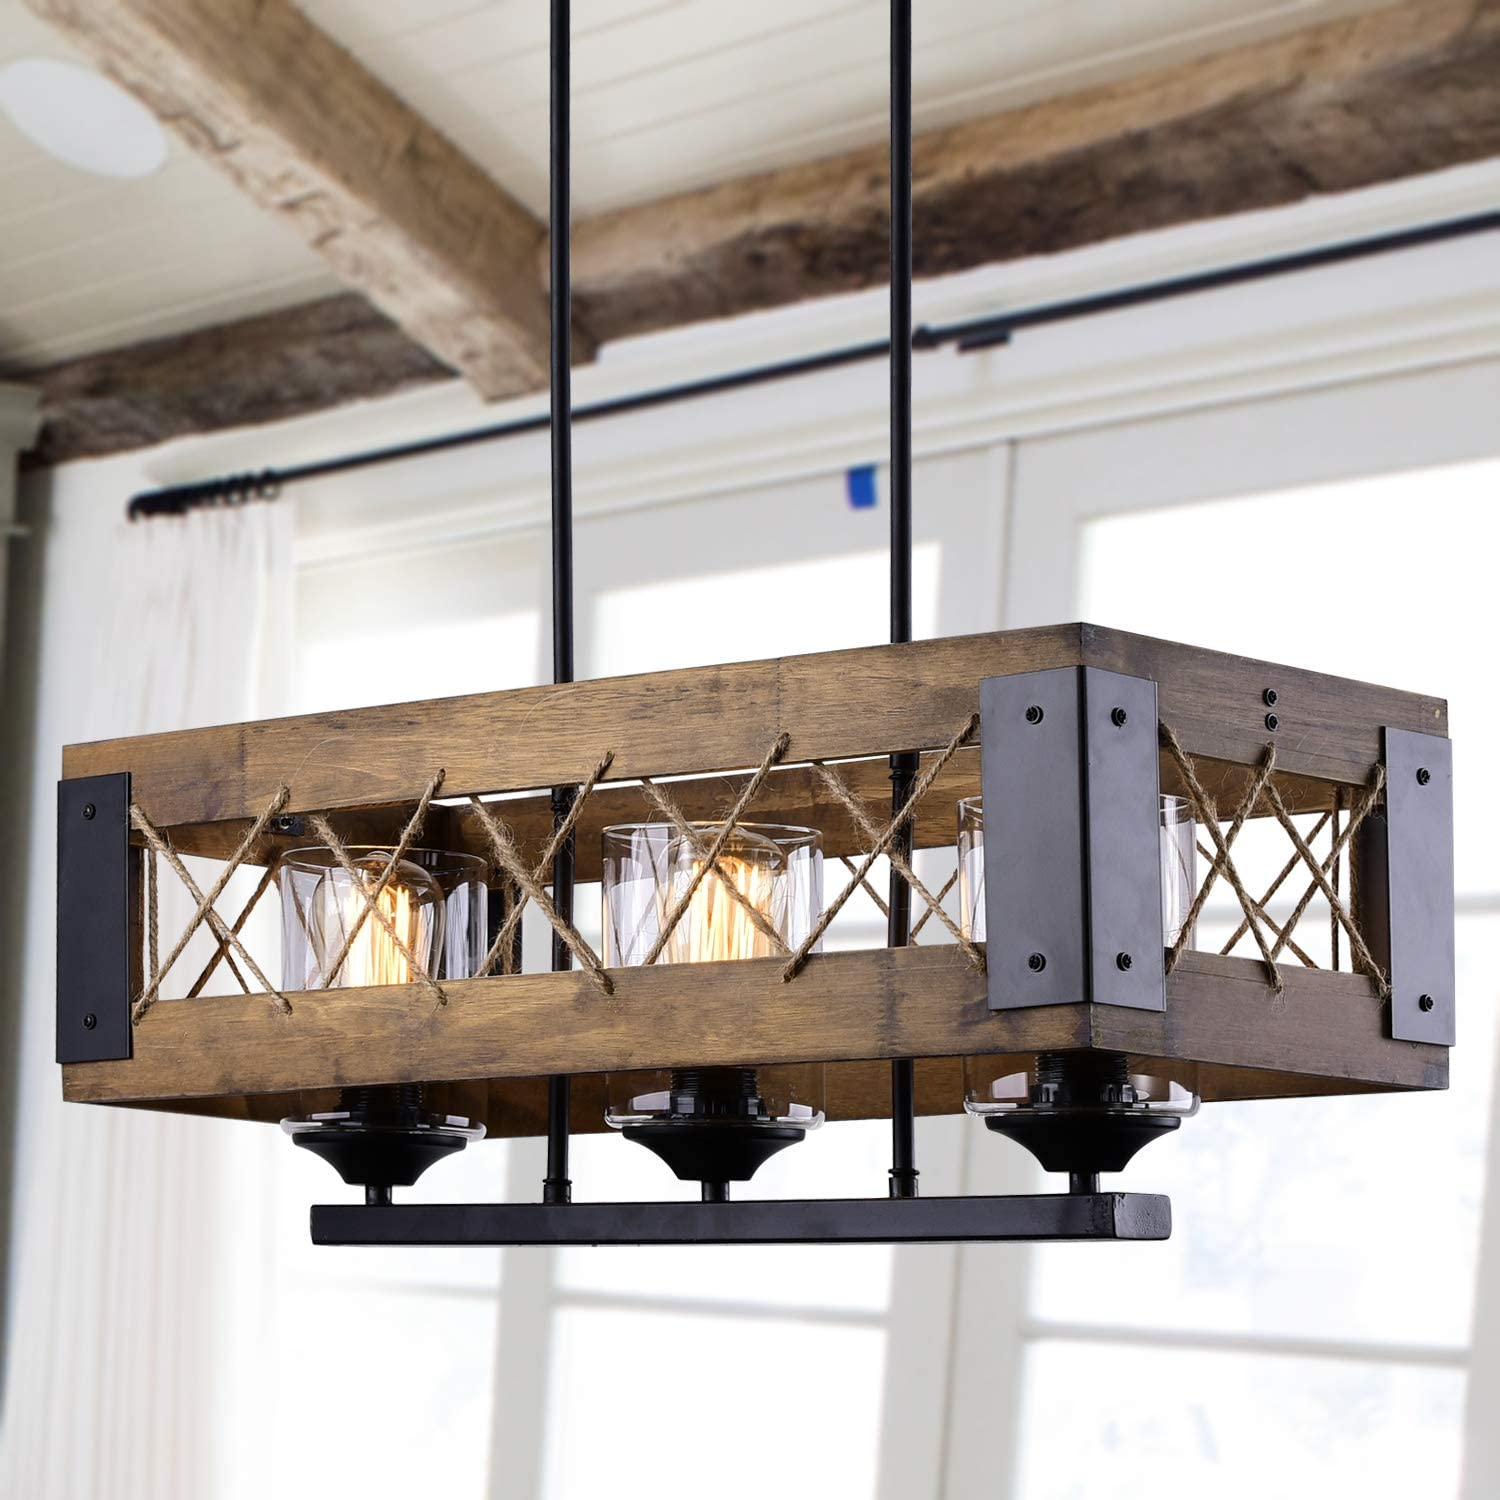 LALUZ Chandeliers 3 Wooden Kitchen Island Pendant Lighting in Rustic Wood  and Painted Black Metal Finish with Hemp-Ropes & Clear Glass Shades,  3-Light ...